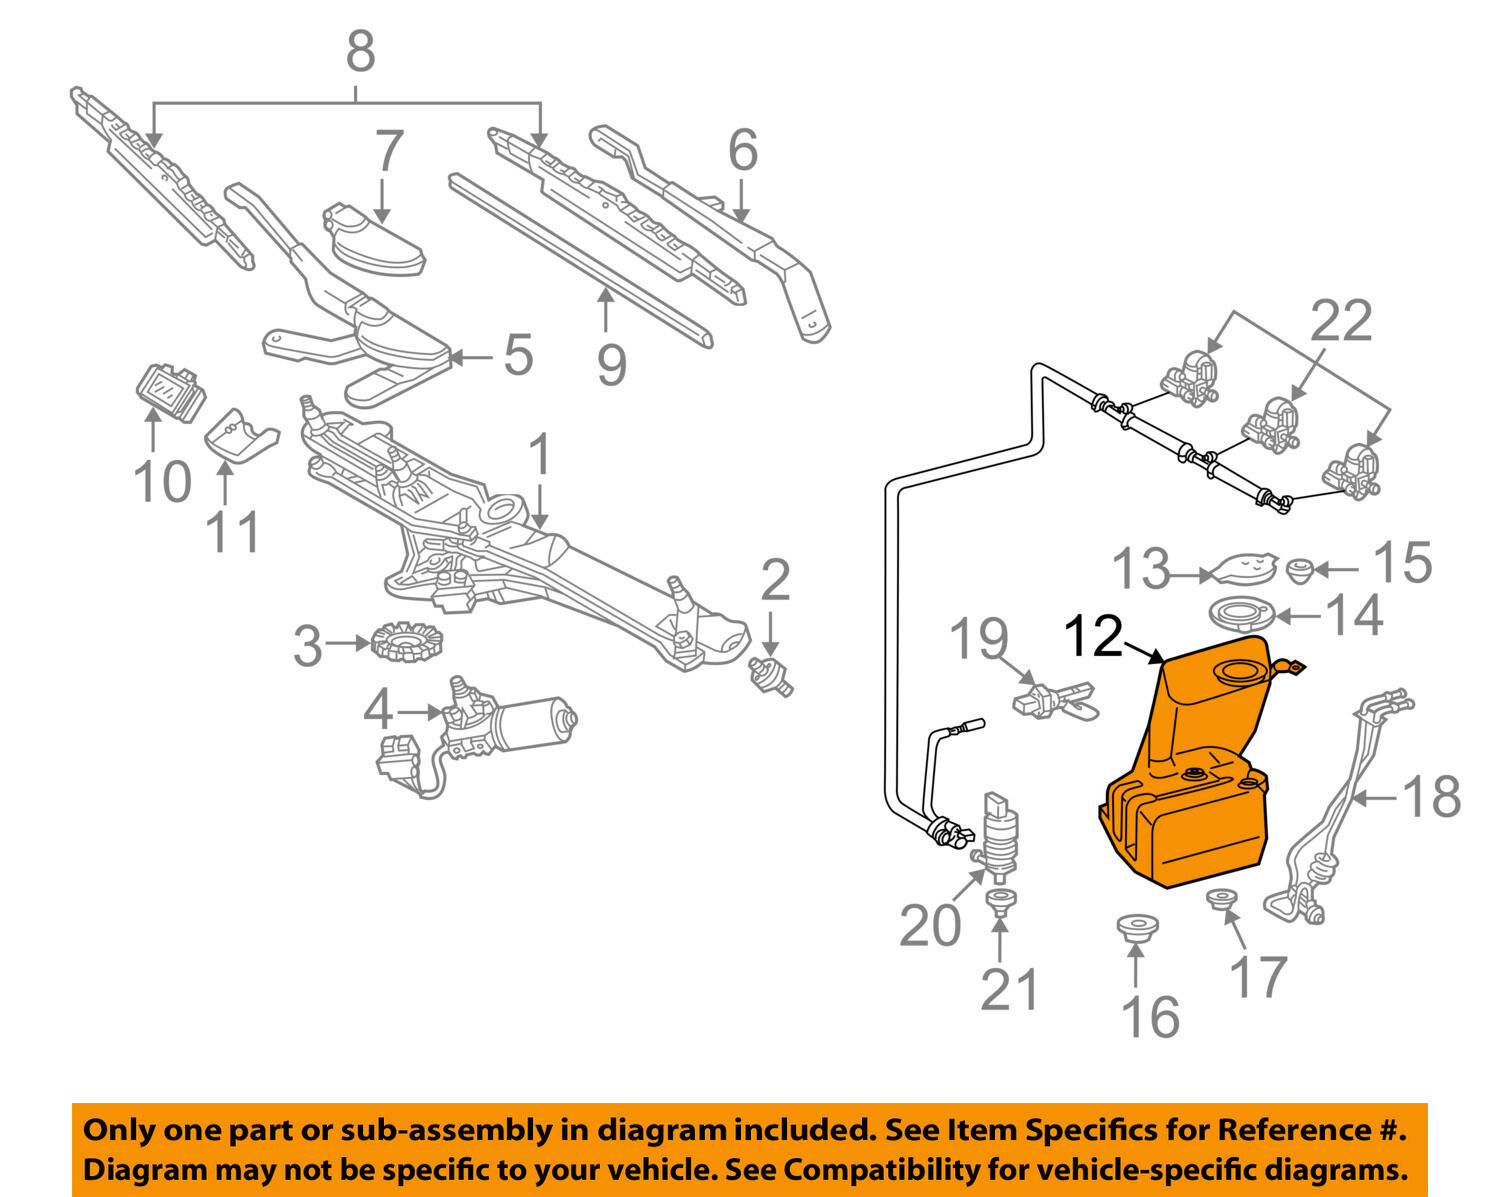 00 Mercedes Benz S430 S Class W220 Winshield Washer Fluid 2001 Cl600 Fuse Diagram Norton Secured Powered By Verisign